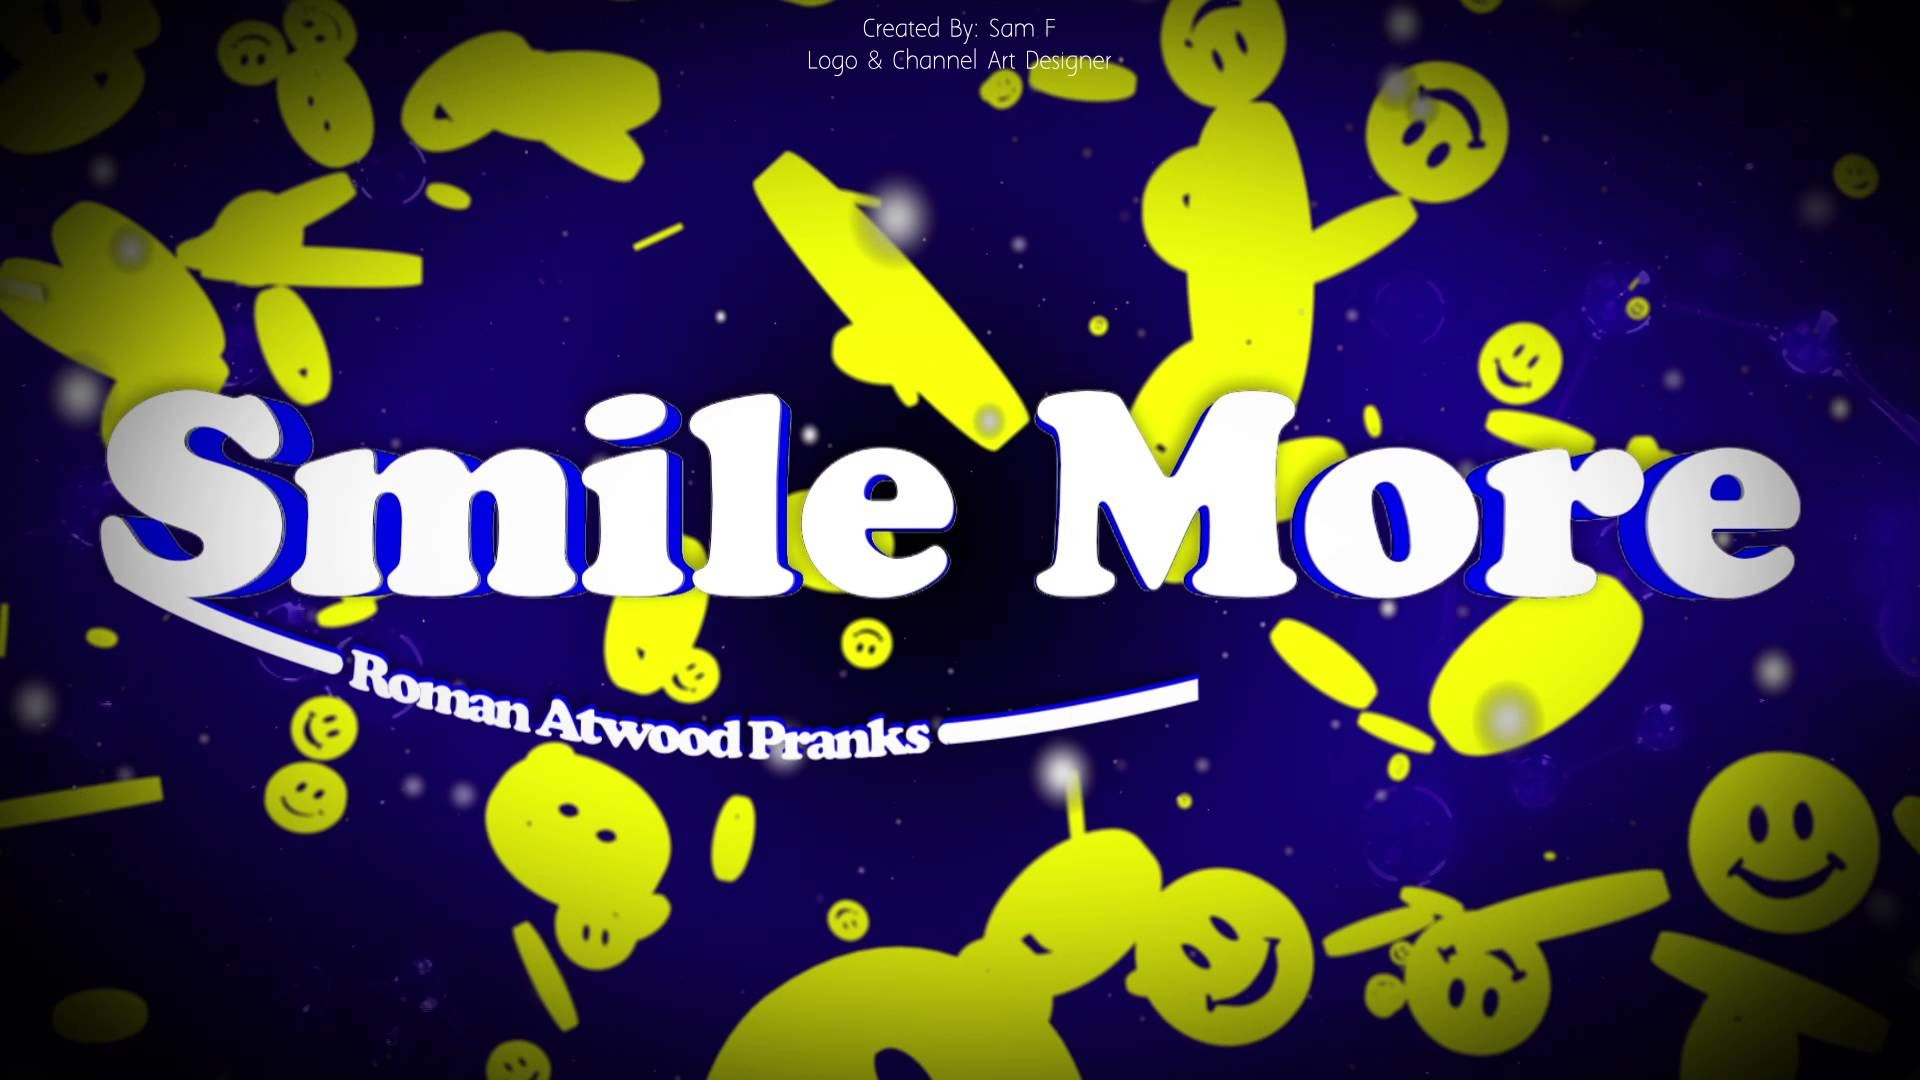 Smile More Wallpaper 80 Images HD Wallpapers Download Free Images Wallpaper [1000image.com]